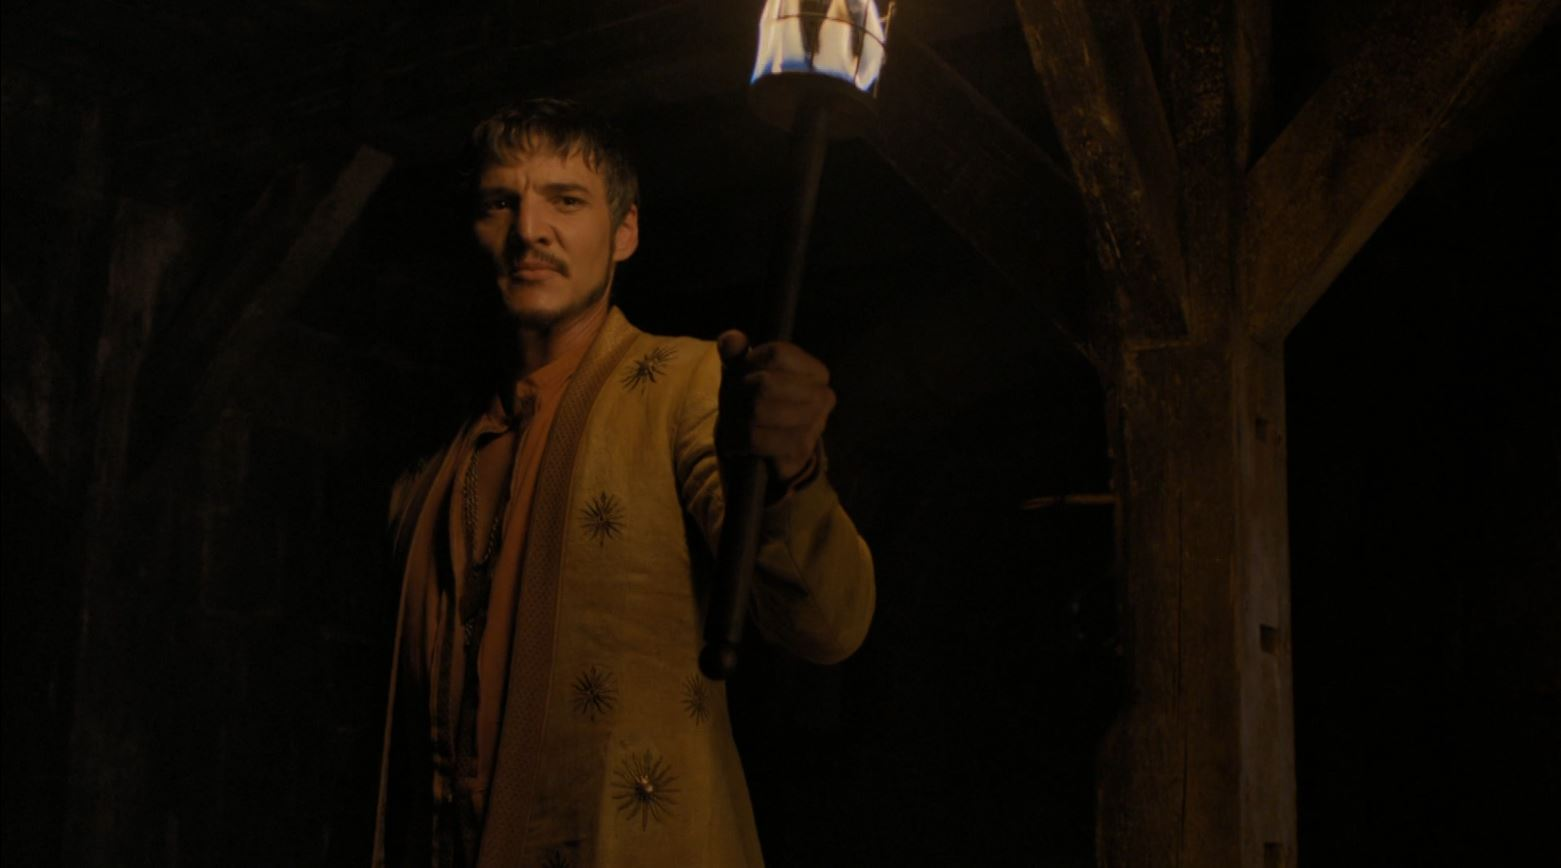 https://i1.wp.com/scifiempire.net/wordpress/wp-content/uploads/2014/05/Game-Of-Thrones-S4Ep7-Mockingbird-Review-Pedro-Pascal-as-Oberyn-Martell-offers-to-be-the-Champion.jpg